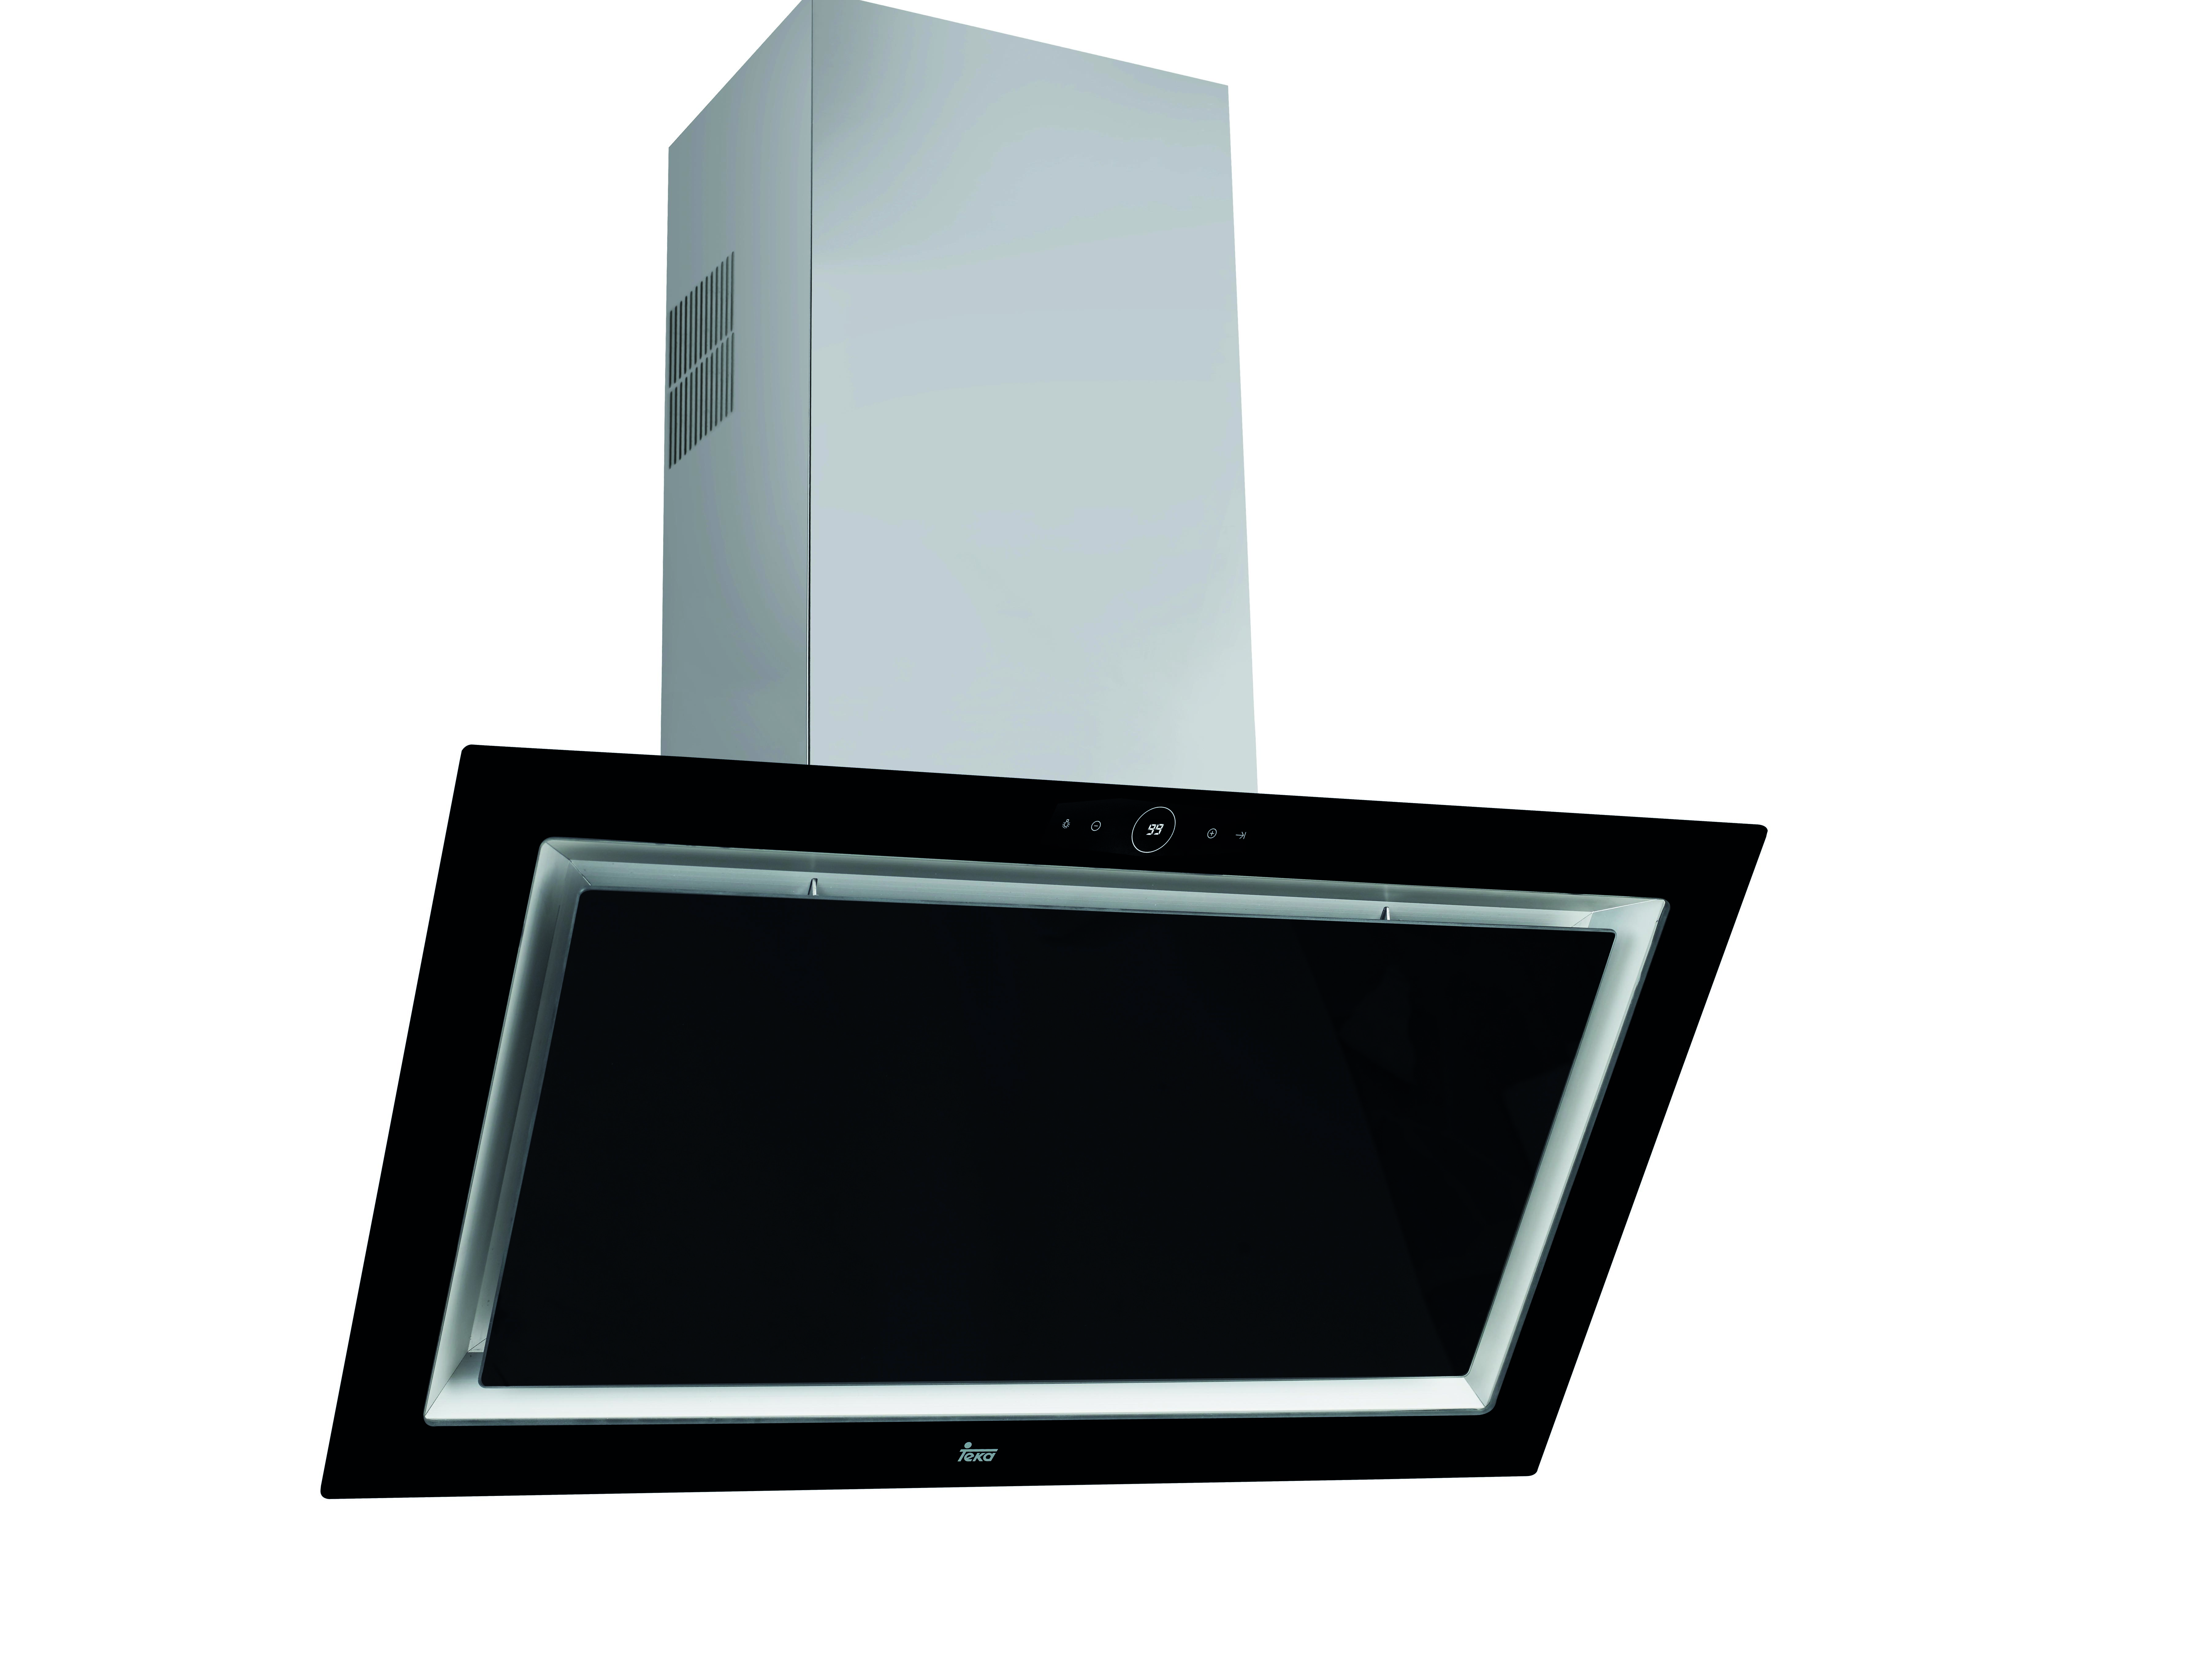 Teka 40437210 - Campana Quadro DLV 998 Decorativa Pared 90 Cm Negra - Zoom